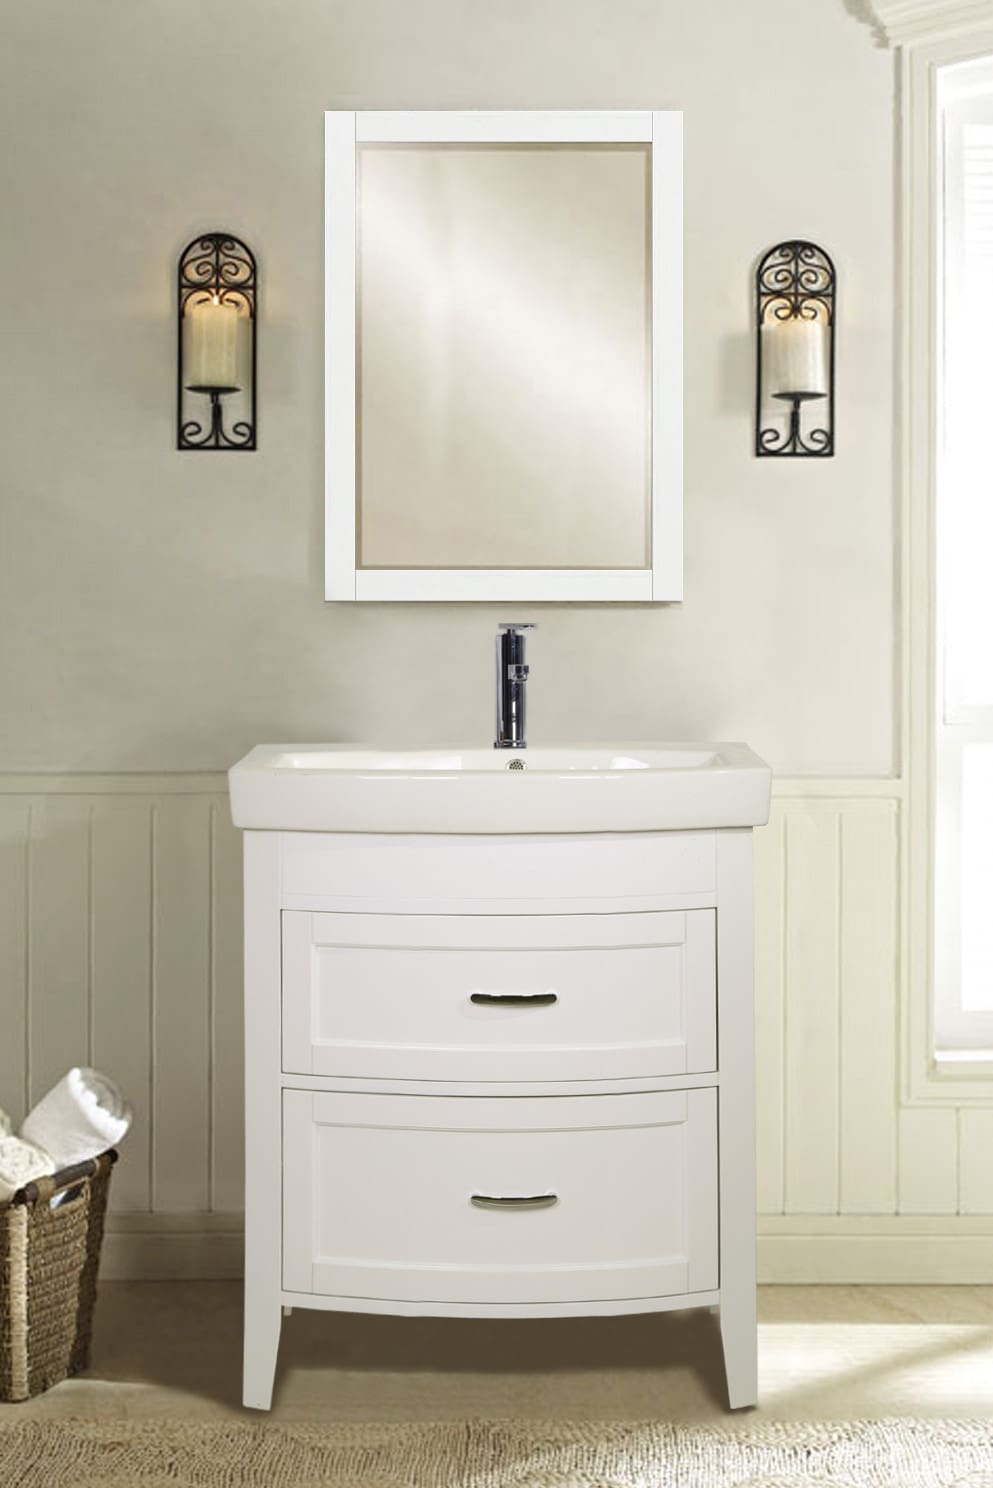 Empire Industries Madison 30 Bathroom Vanity empire industries a2802w 28 inch freestanding vanity with 2